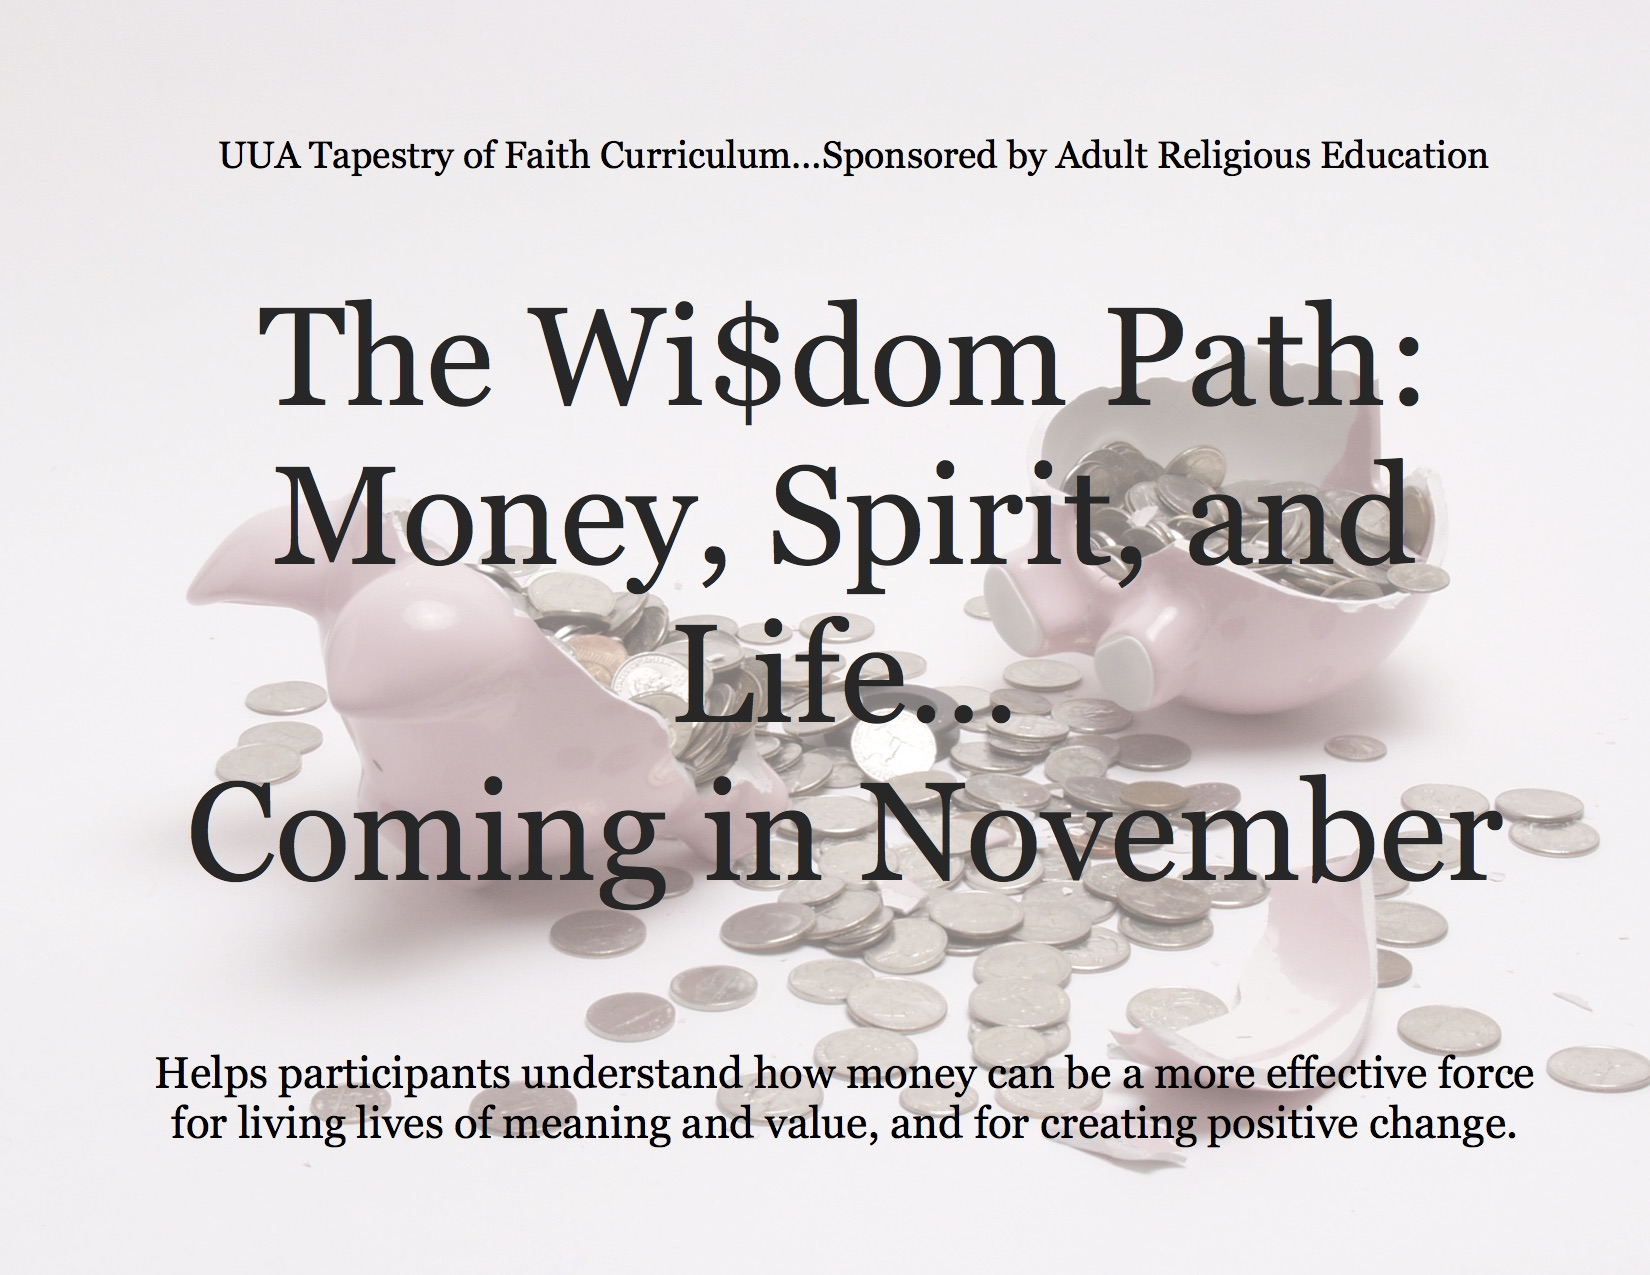 The Wisdom Path: Money, Sprit and Life...Coming in November